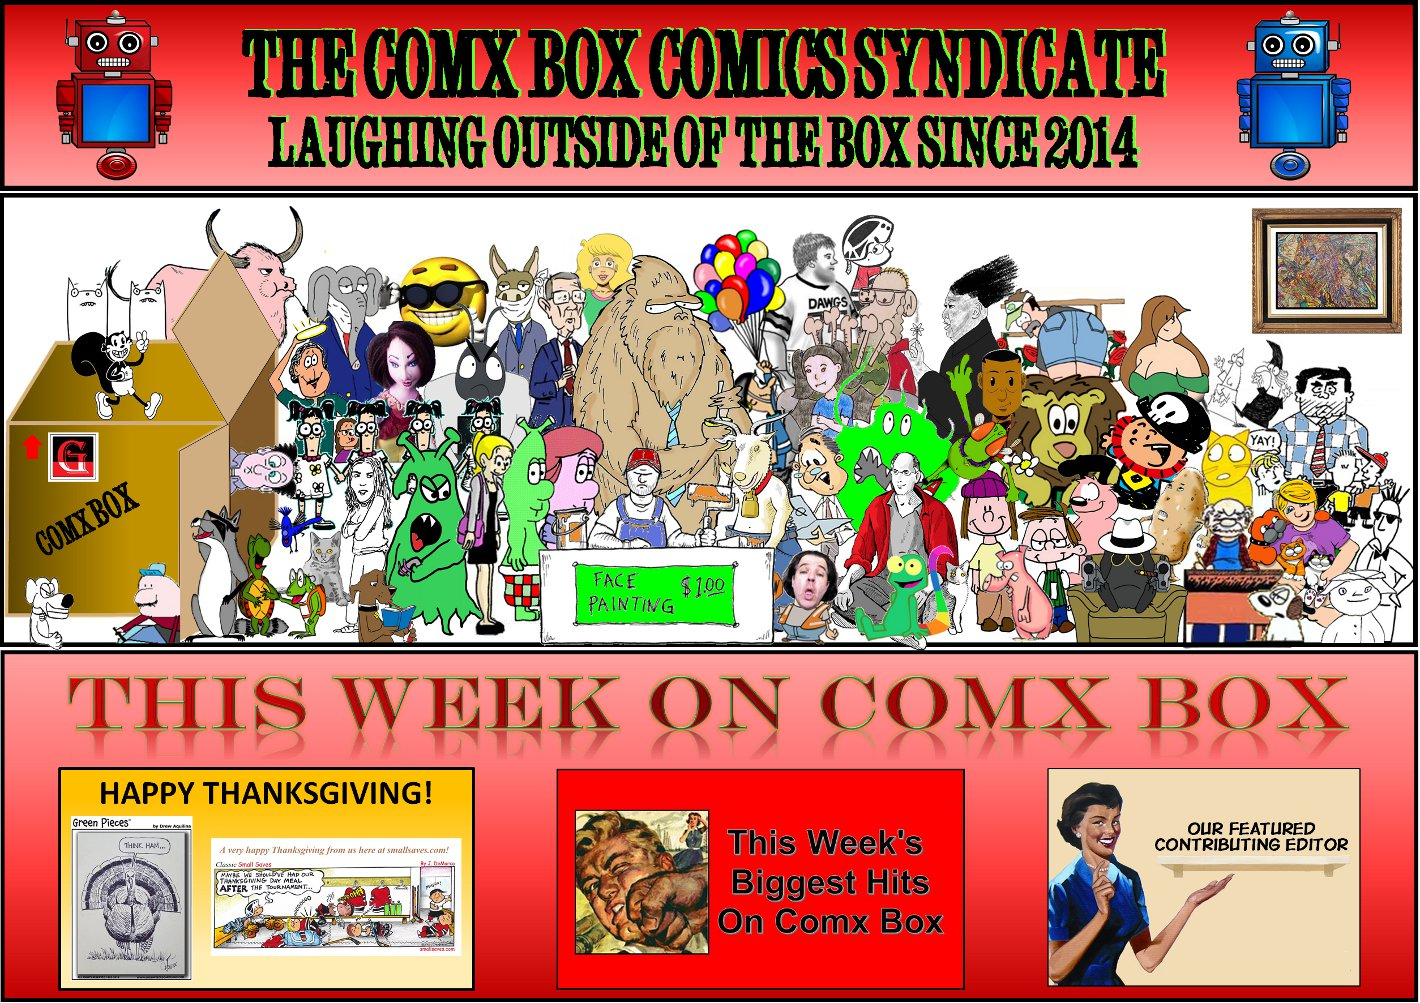 Comx Box Comics Syndicate